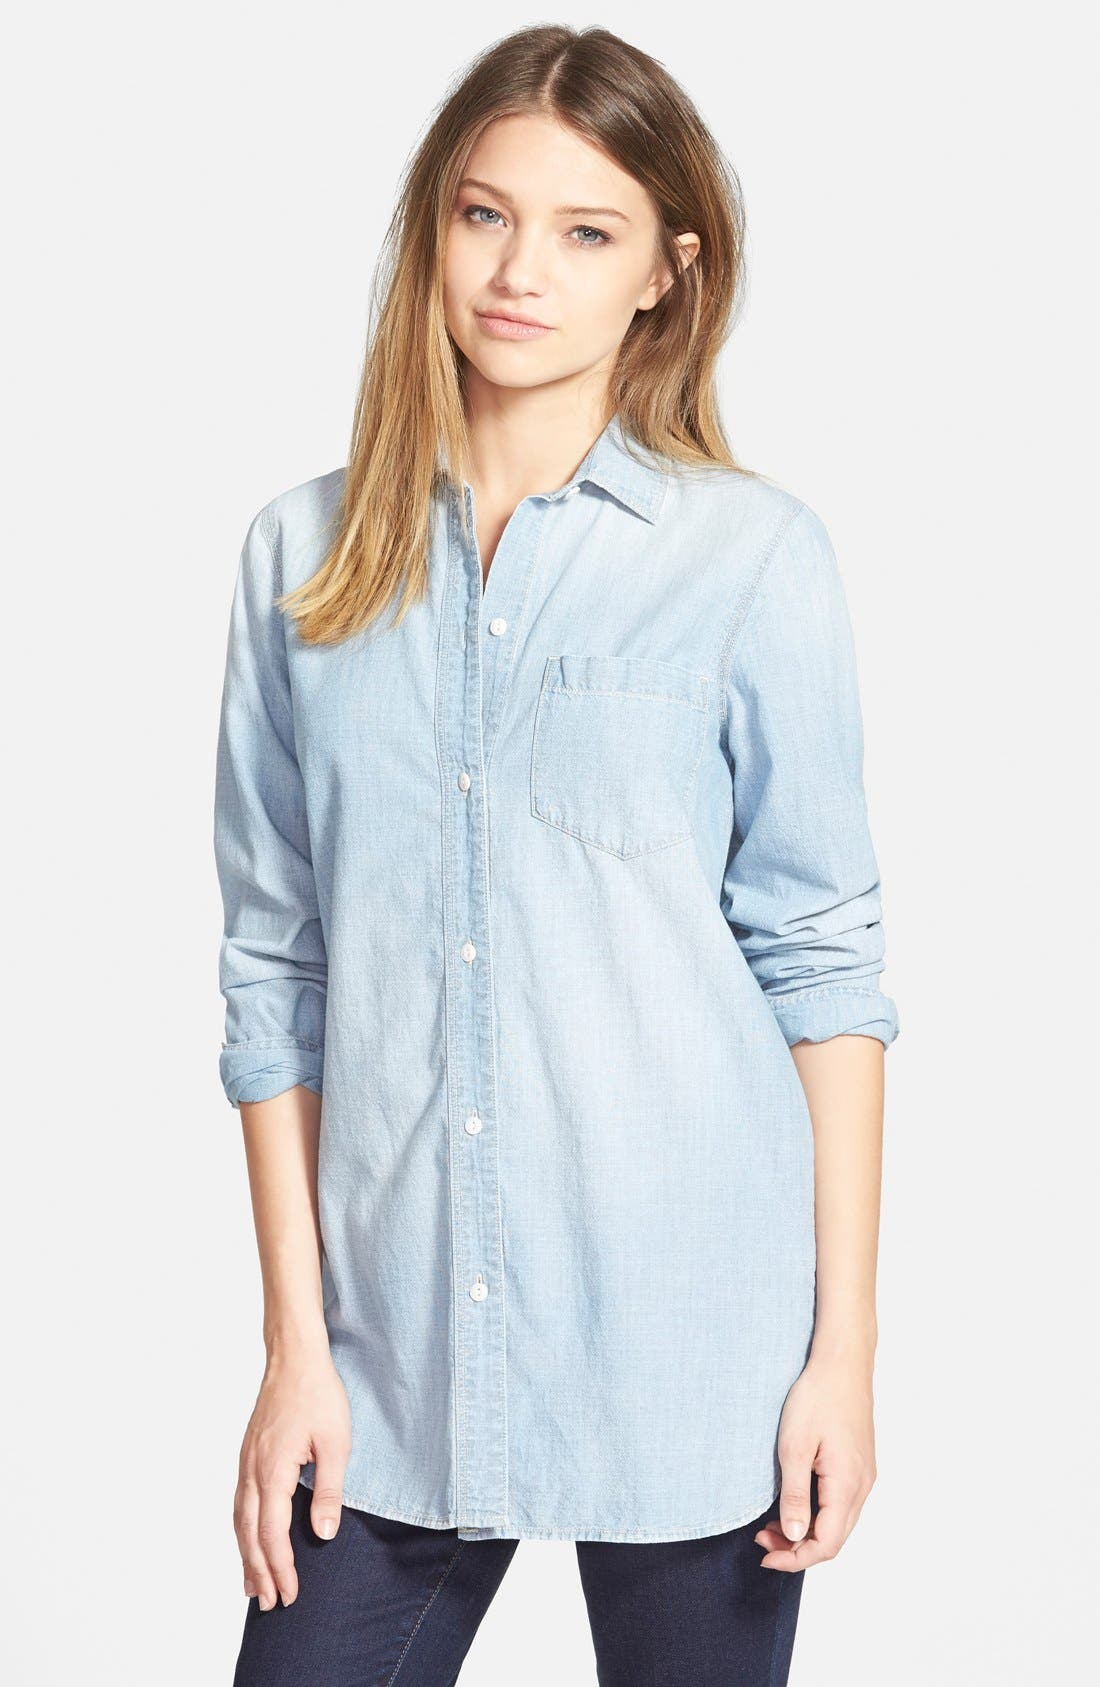 Alternate Image 1 Selected - Madewell Ex-Boyfriend Chambray Shirt